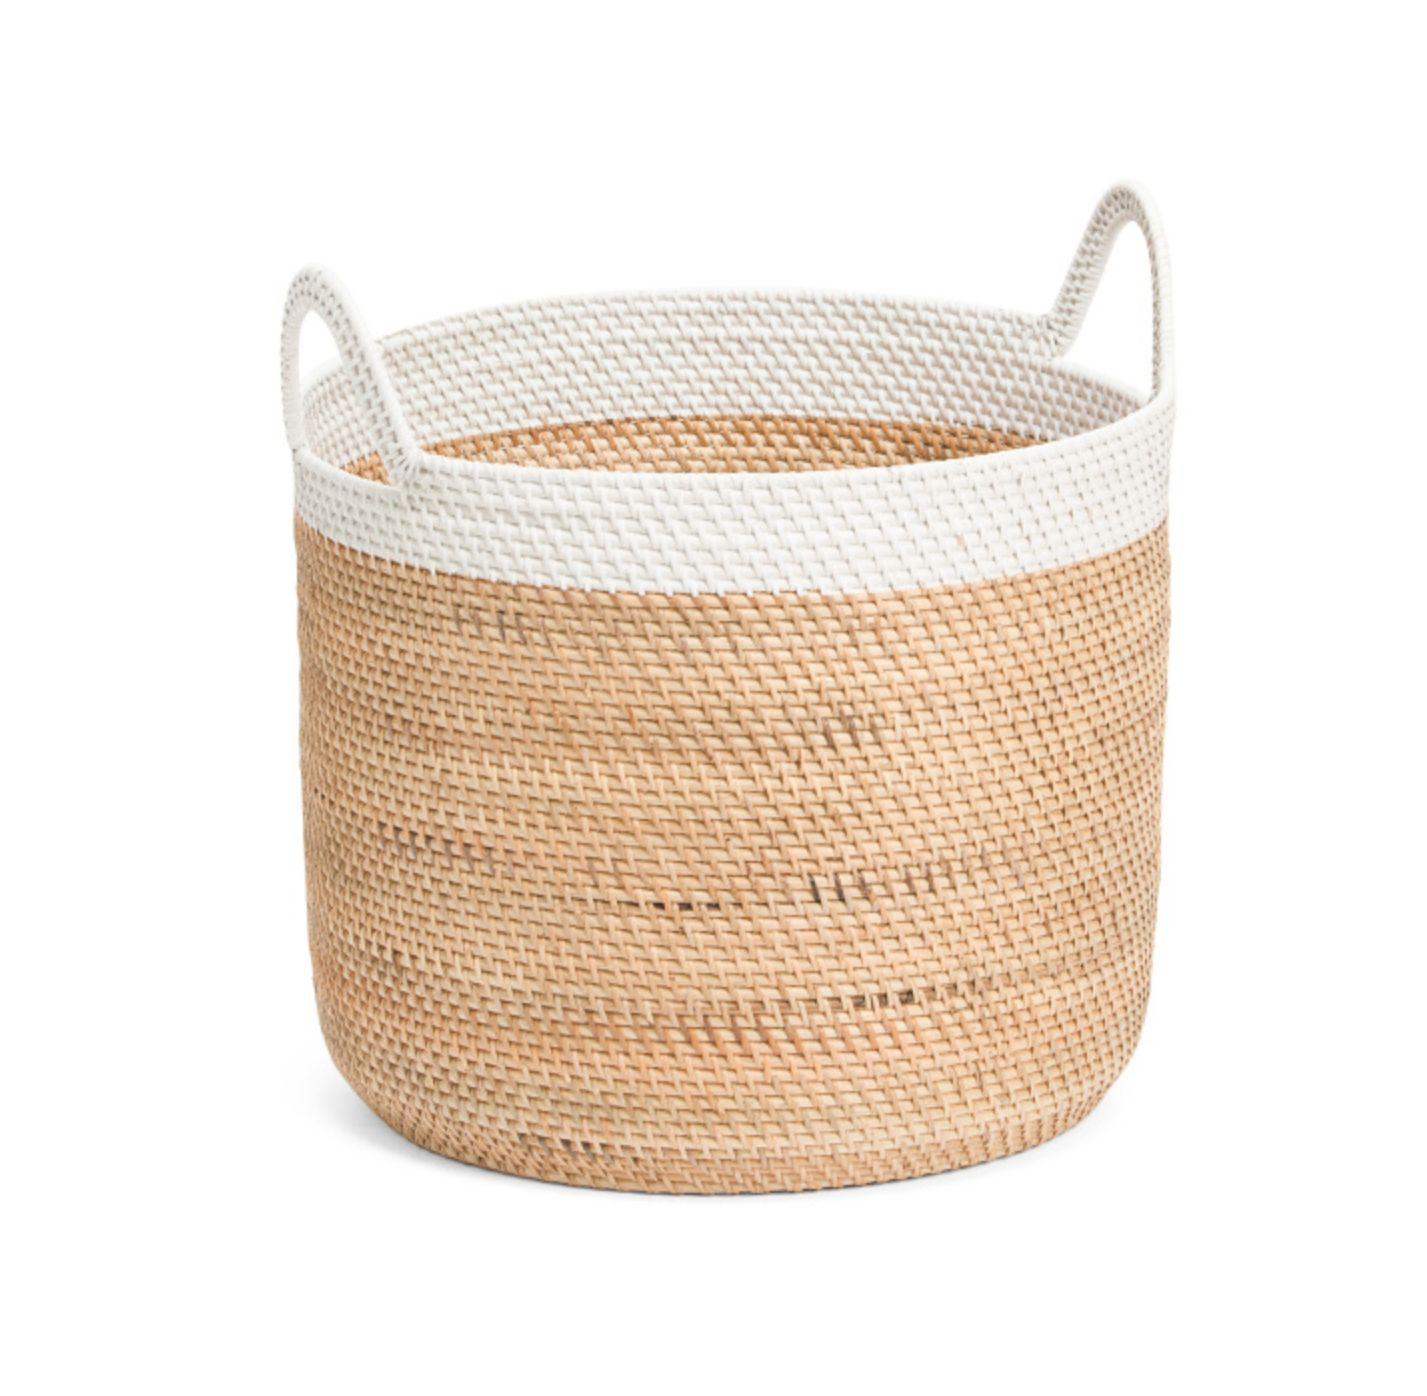 Home Juniper Home Storage Baskets Rattan Decorative